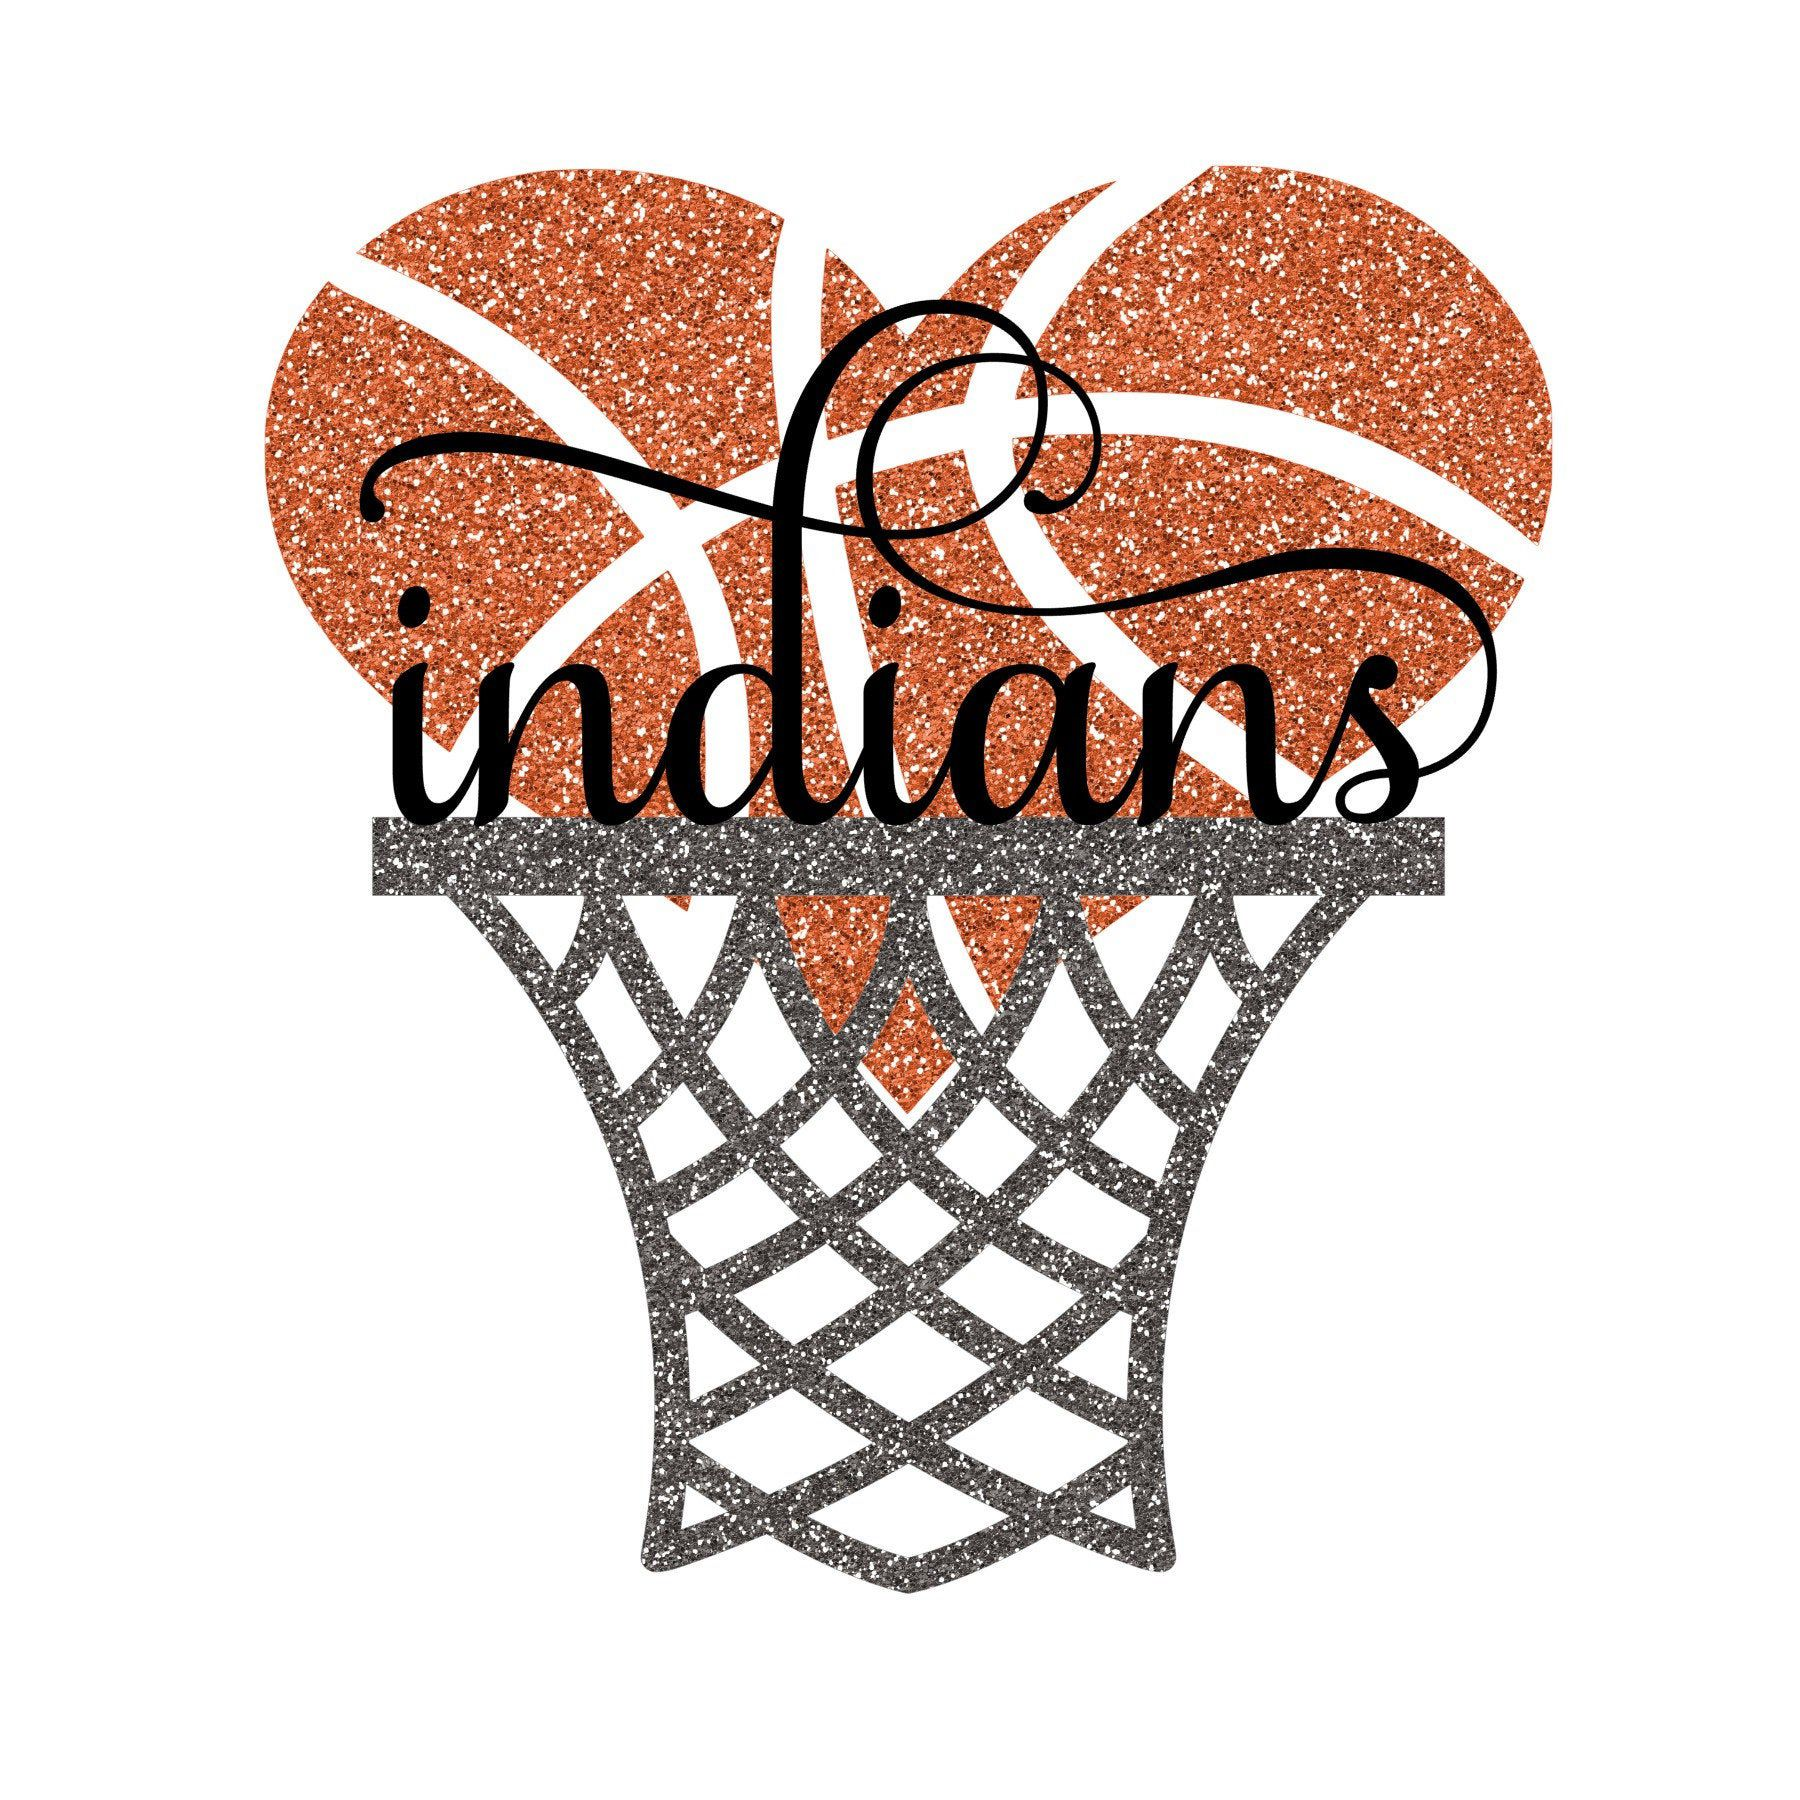 Indians Basketball Heart Hoop With And Without Glitter Svg Png Etsy In 2021 Basketball Shirt Designs Basketball Heart Basketball Mom Shirts